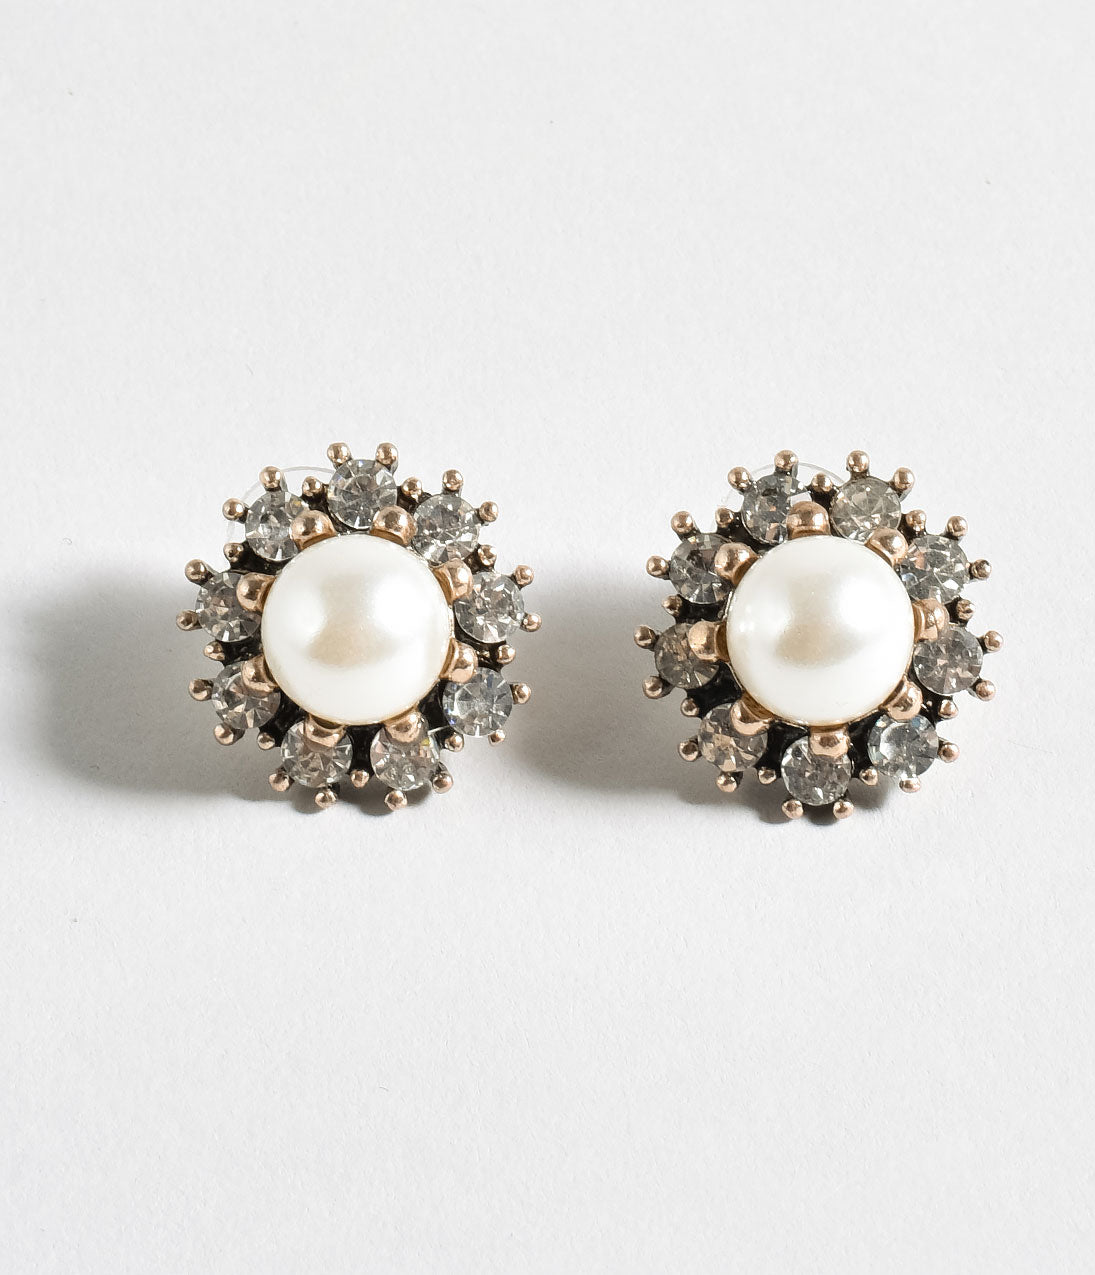 50s Jewelry: Earrings, Necklace, Brooch, Bracelet Ivory Pearl  Silver Rhinestone Stud Earrings $18.00 AT vintagedancer.com